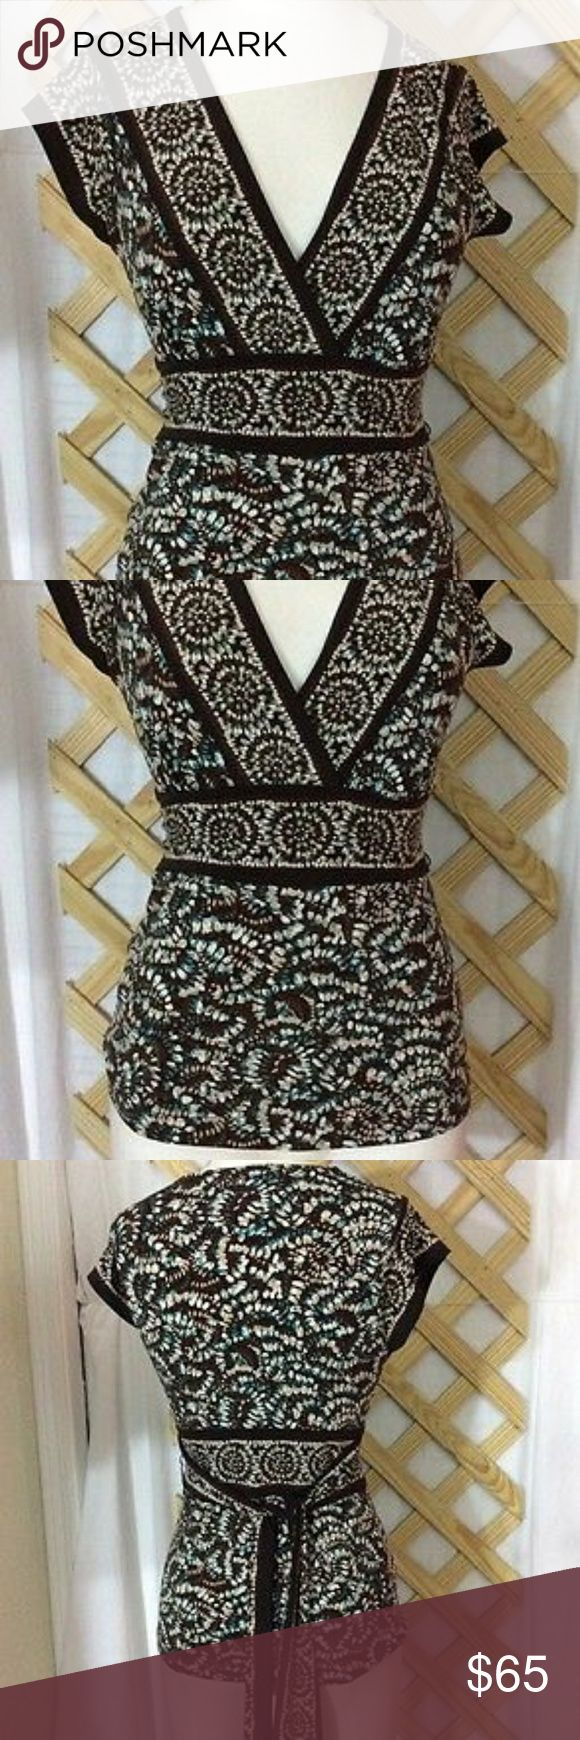 BCBGMaxAzria Top, EUC! Available July 1st, 2017 BCBGMaxAzria Top, Excellent pre-owned condition. The colors are GORGEOUS!! Brown, teal and white. Cute tie back as you can see in the pictures.  PLEASE NOTE:  **It will be available to ship on Saturday, July 1st so if you want to purchase please be aware of that**. Thanks! BCBGMaxAzria Tops Blouses